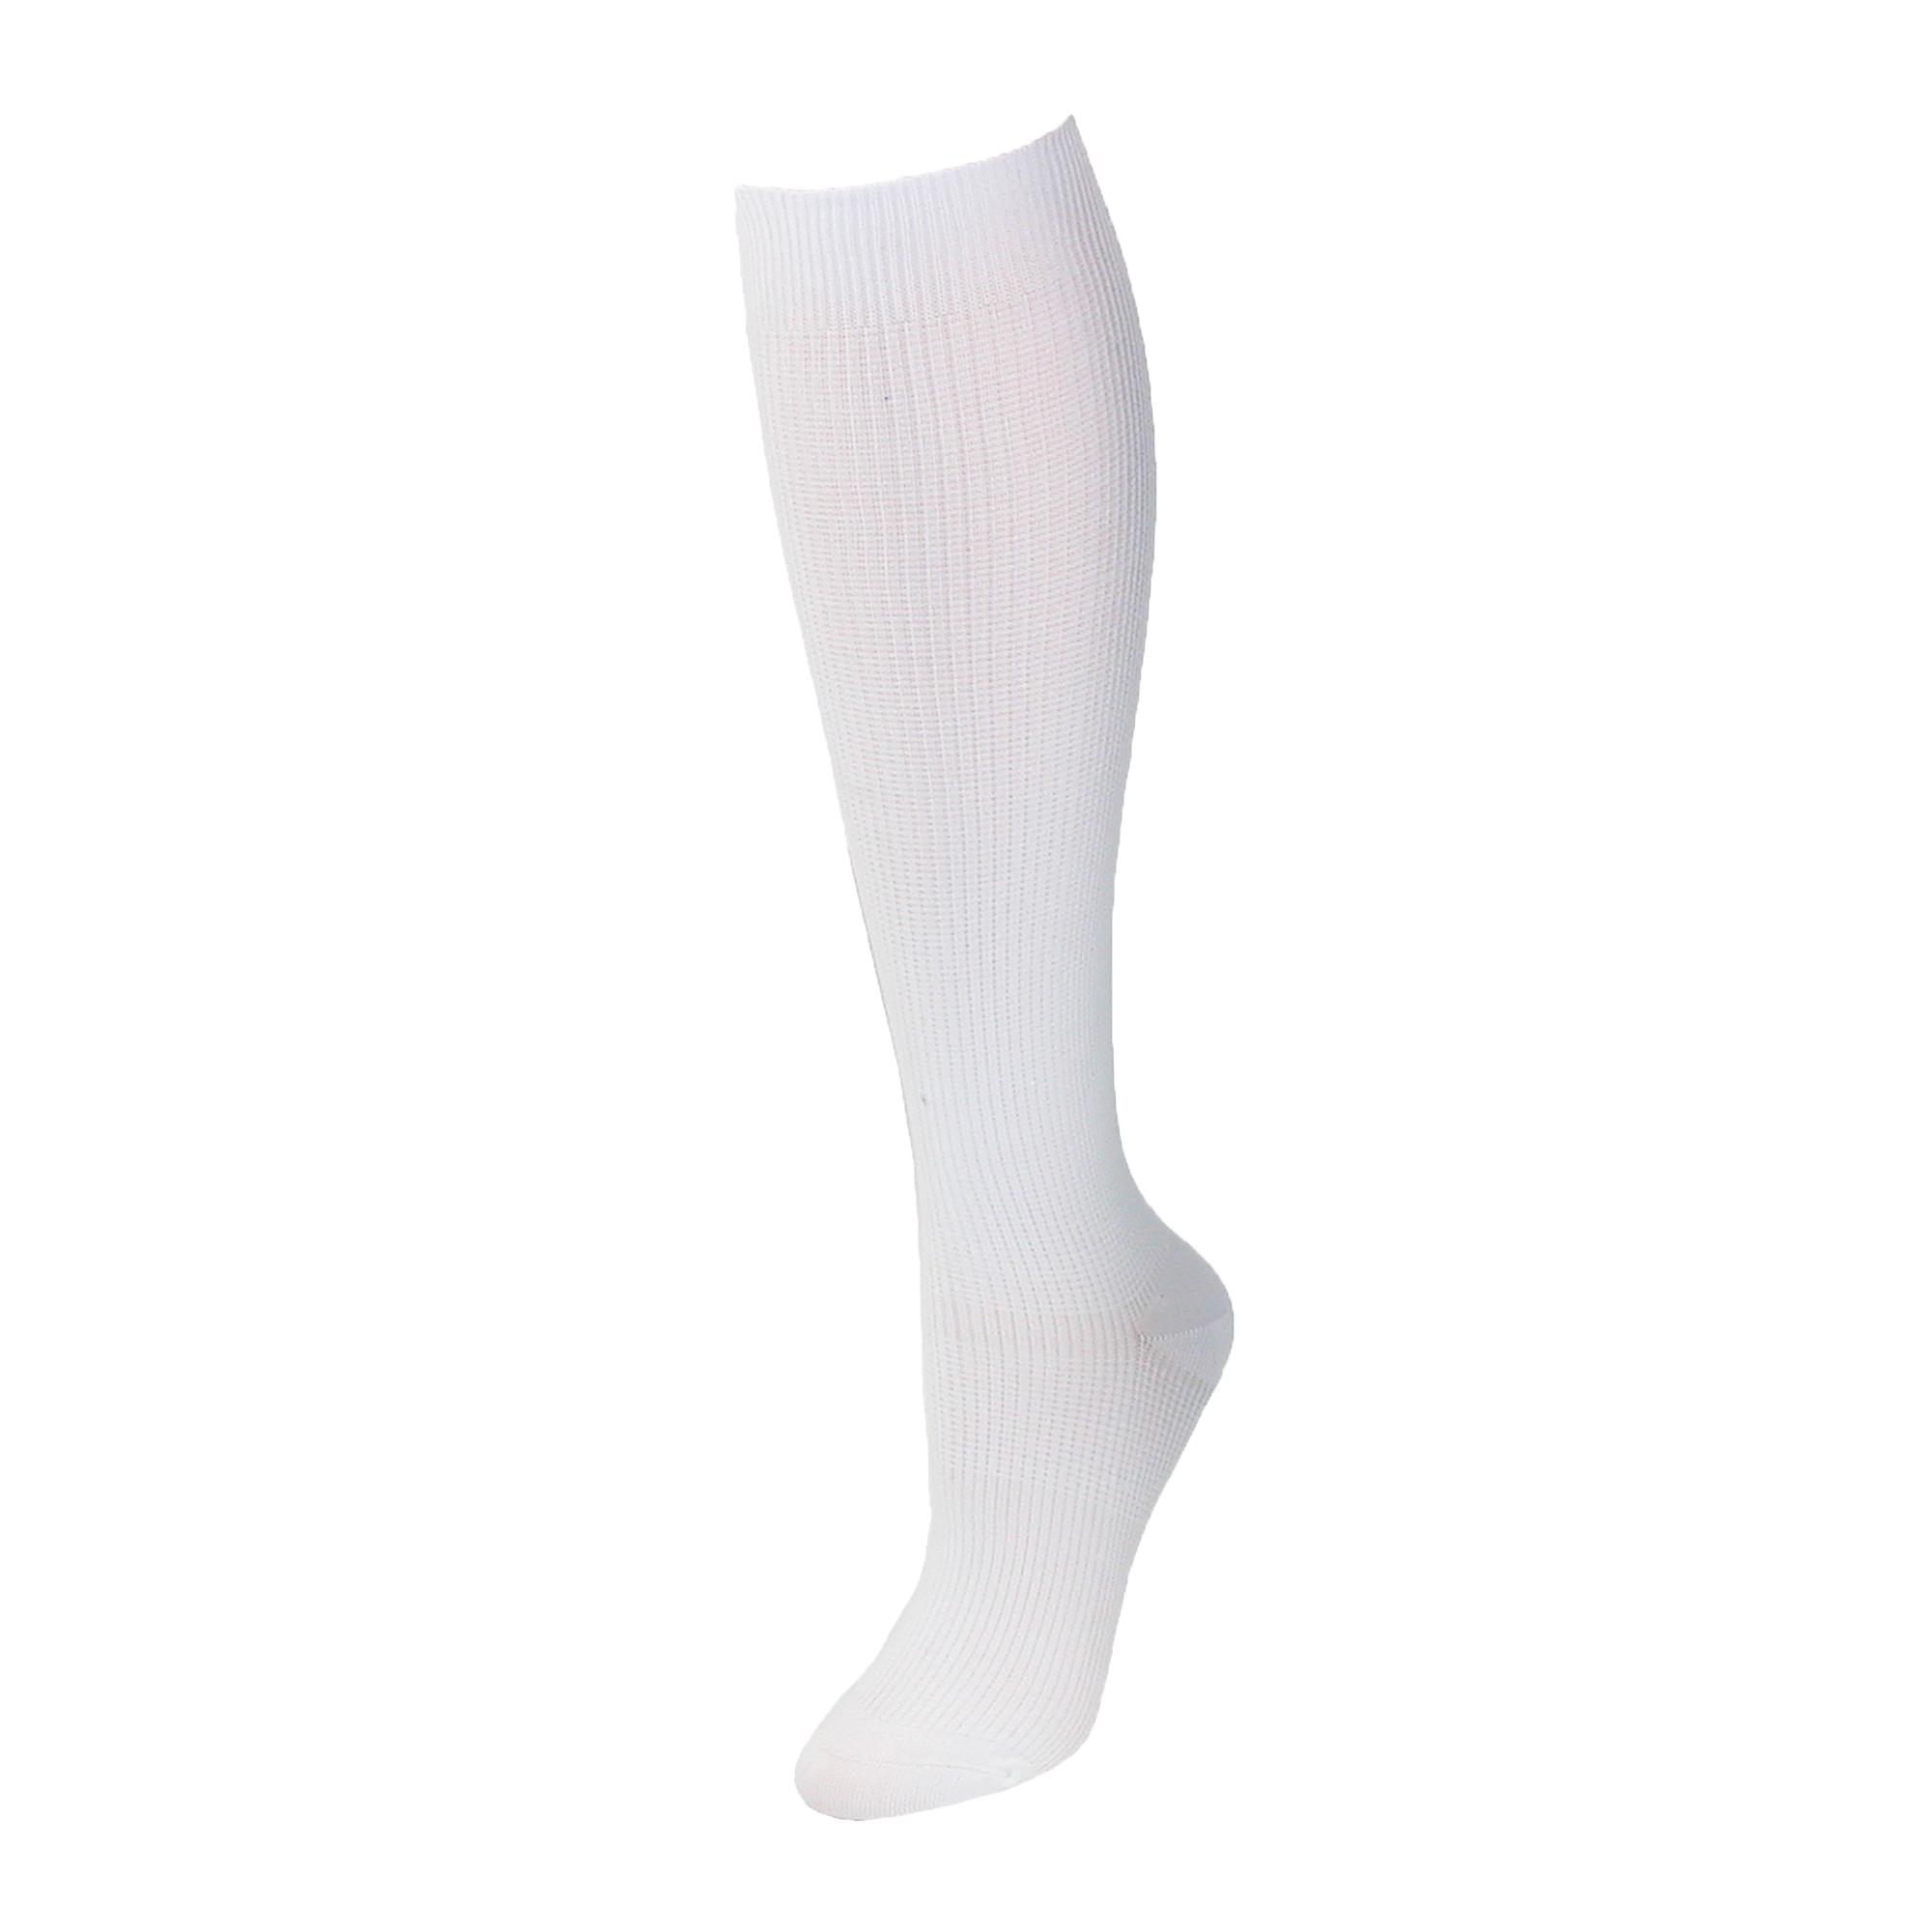 new think medical women's plus size compression socks knee highs